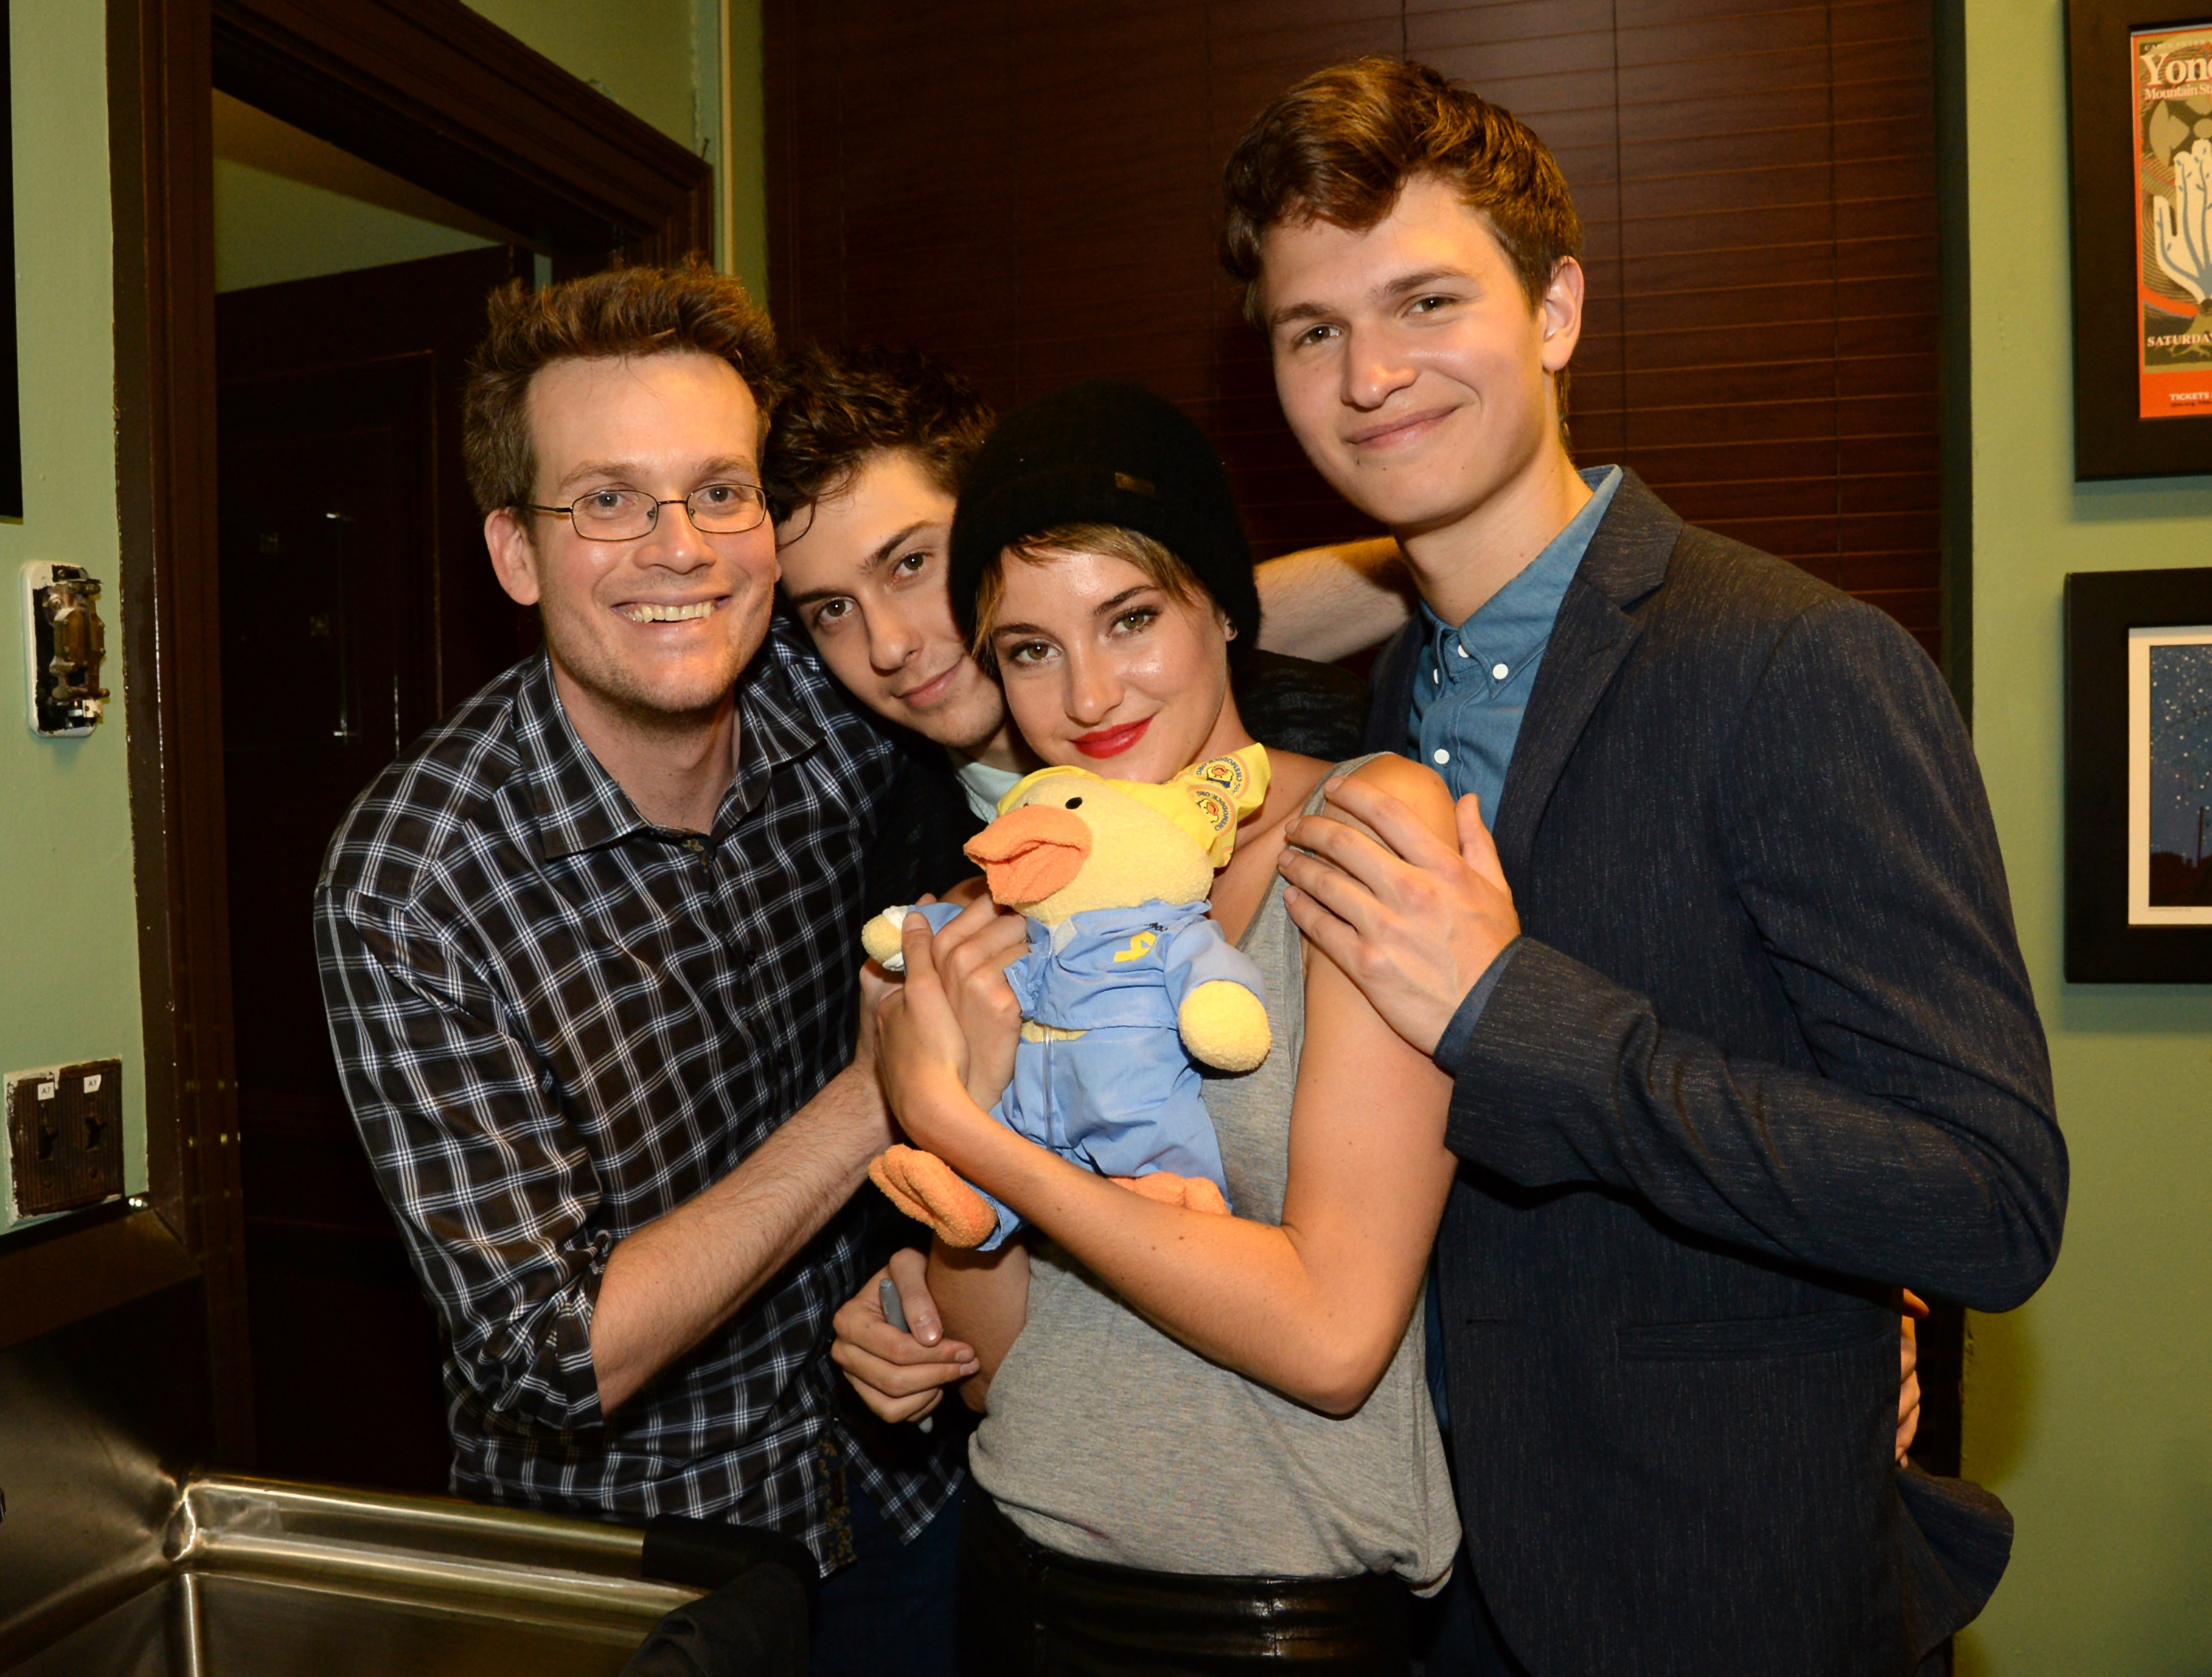 John Green, Nat Wolff, Shailene Woodley, and Ansel Elgort attend  The Fault In Our Stars  Nashville red carpet and fan event with Shailene Woodley, Ansel Elgort, Nat Wolff and John Green at Nashville War Memorial Auditorium on May 8, 2014 in Nashville, Tennessee.